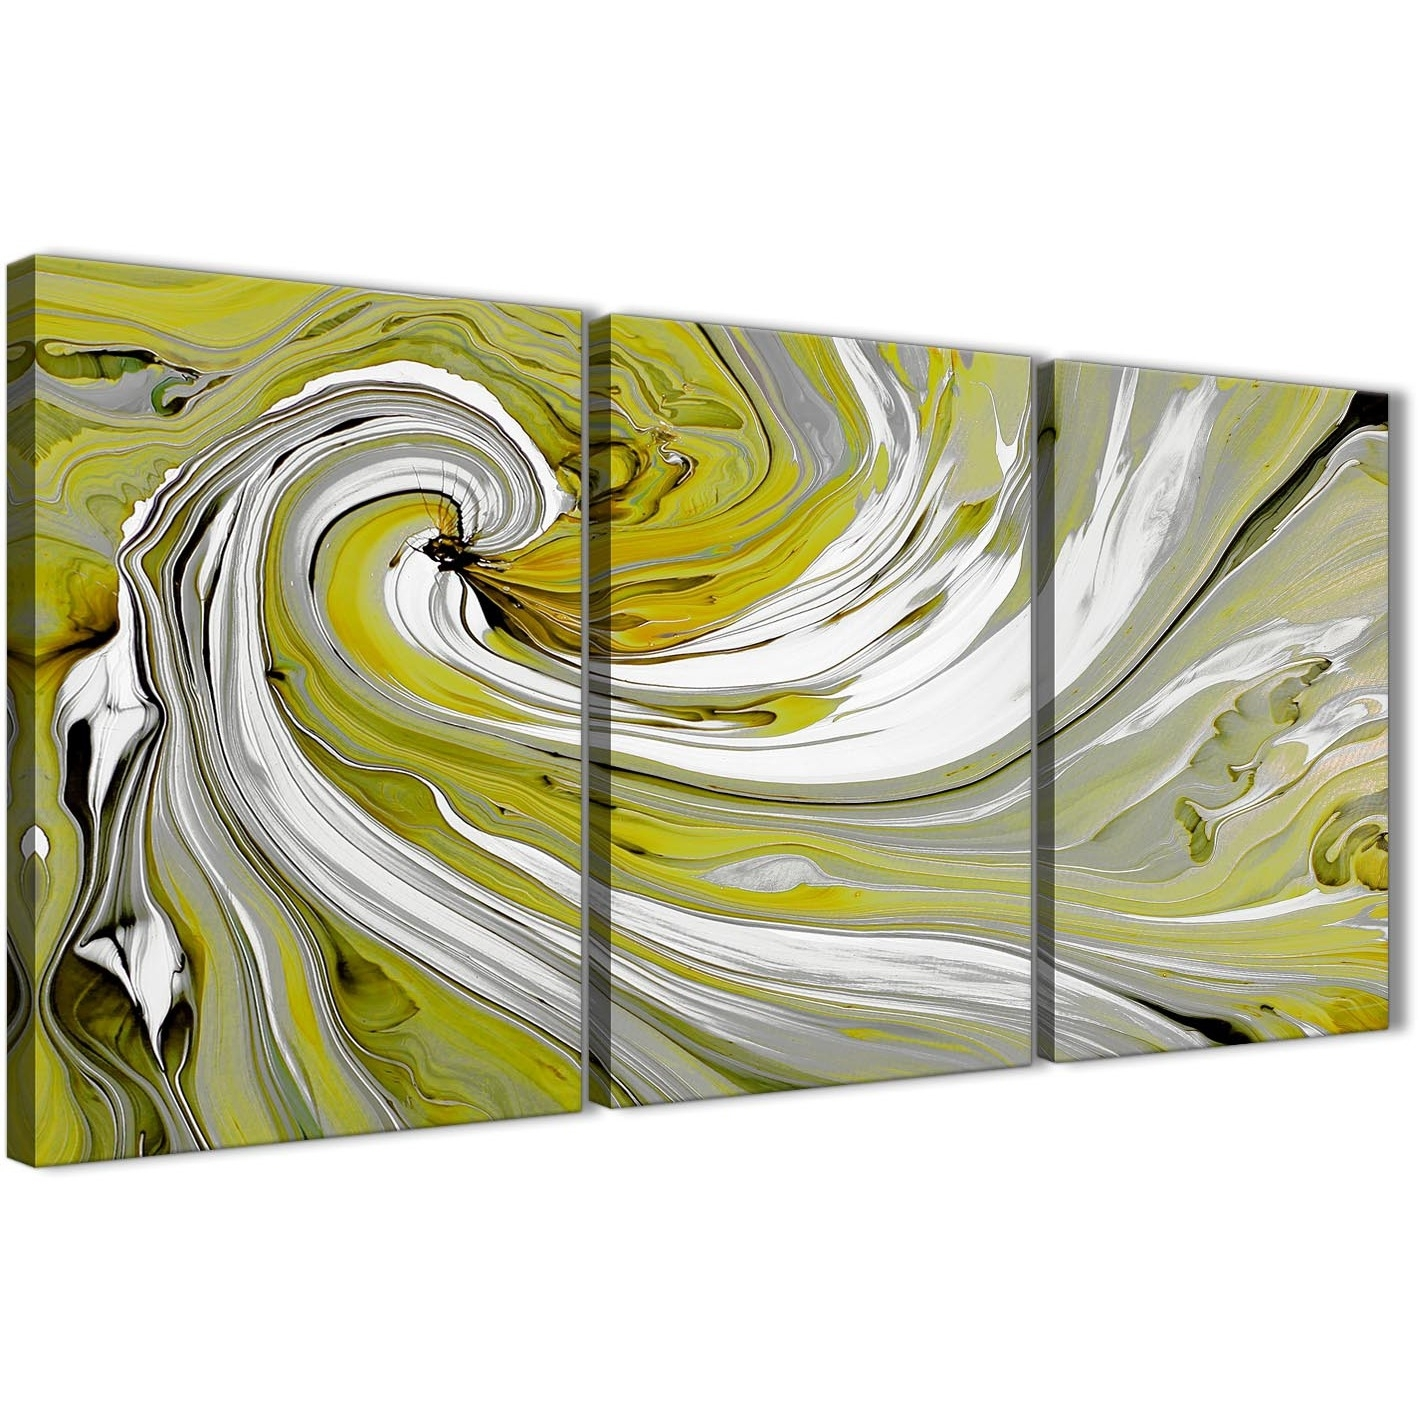 Lime Green Swirls Modern Abstract Canvas Wall Art – Split 3 Piece Inside Most Up To Date Lime Green Canvas Wall Art (View 11 of 15)